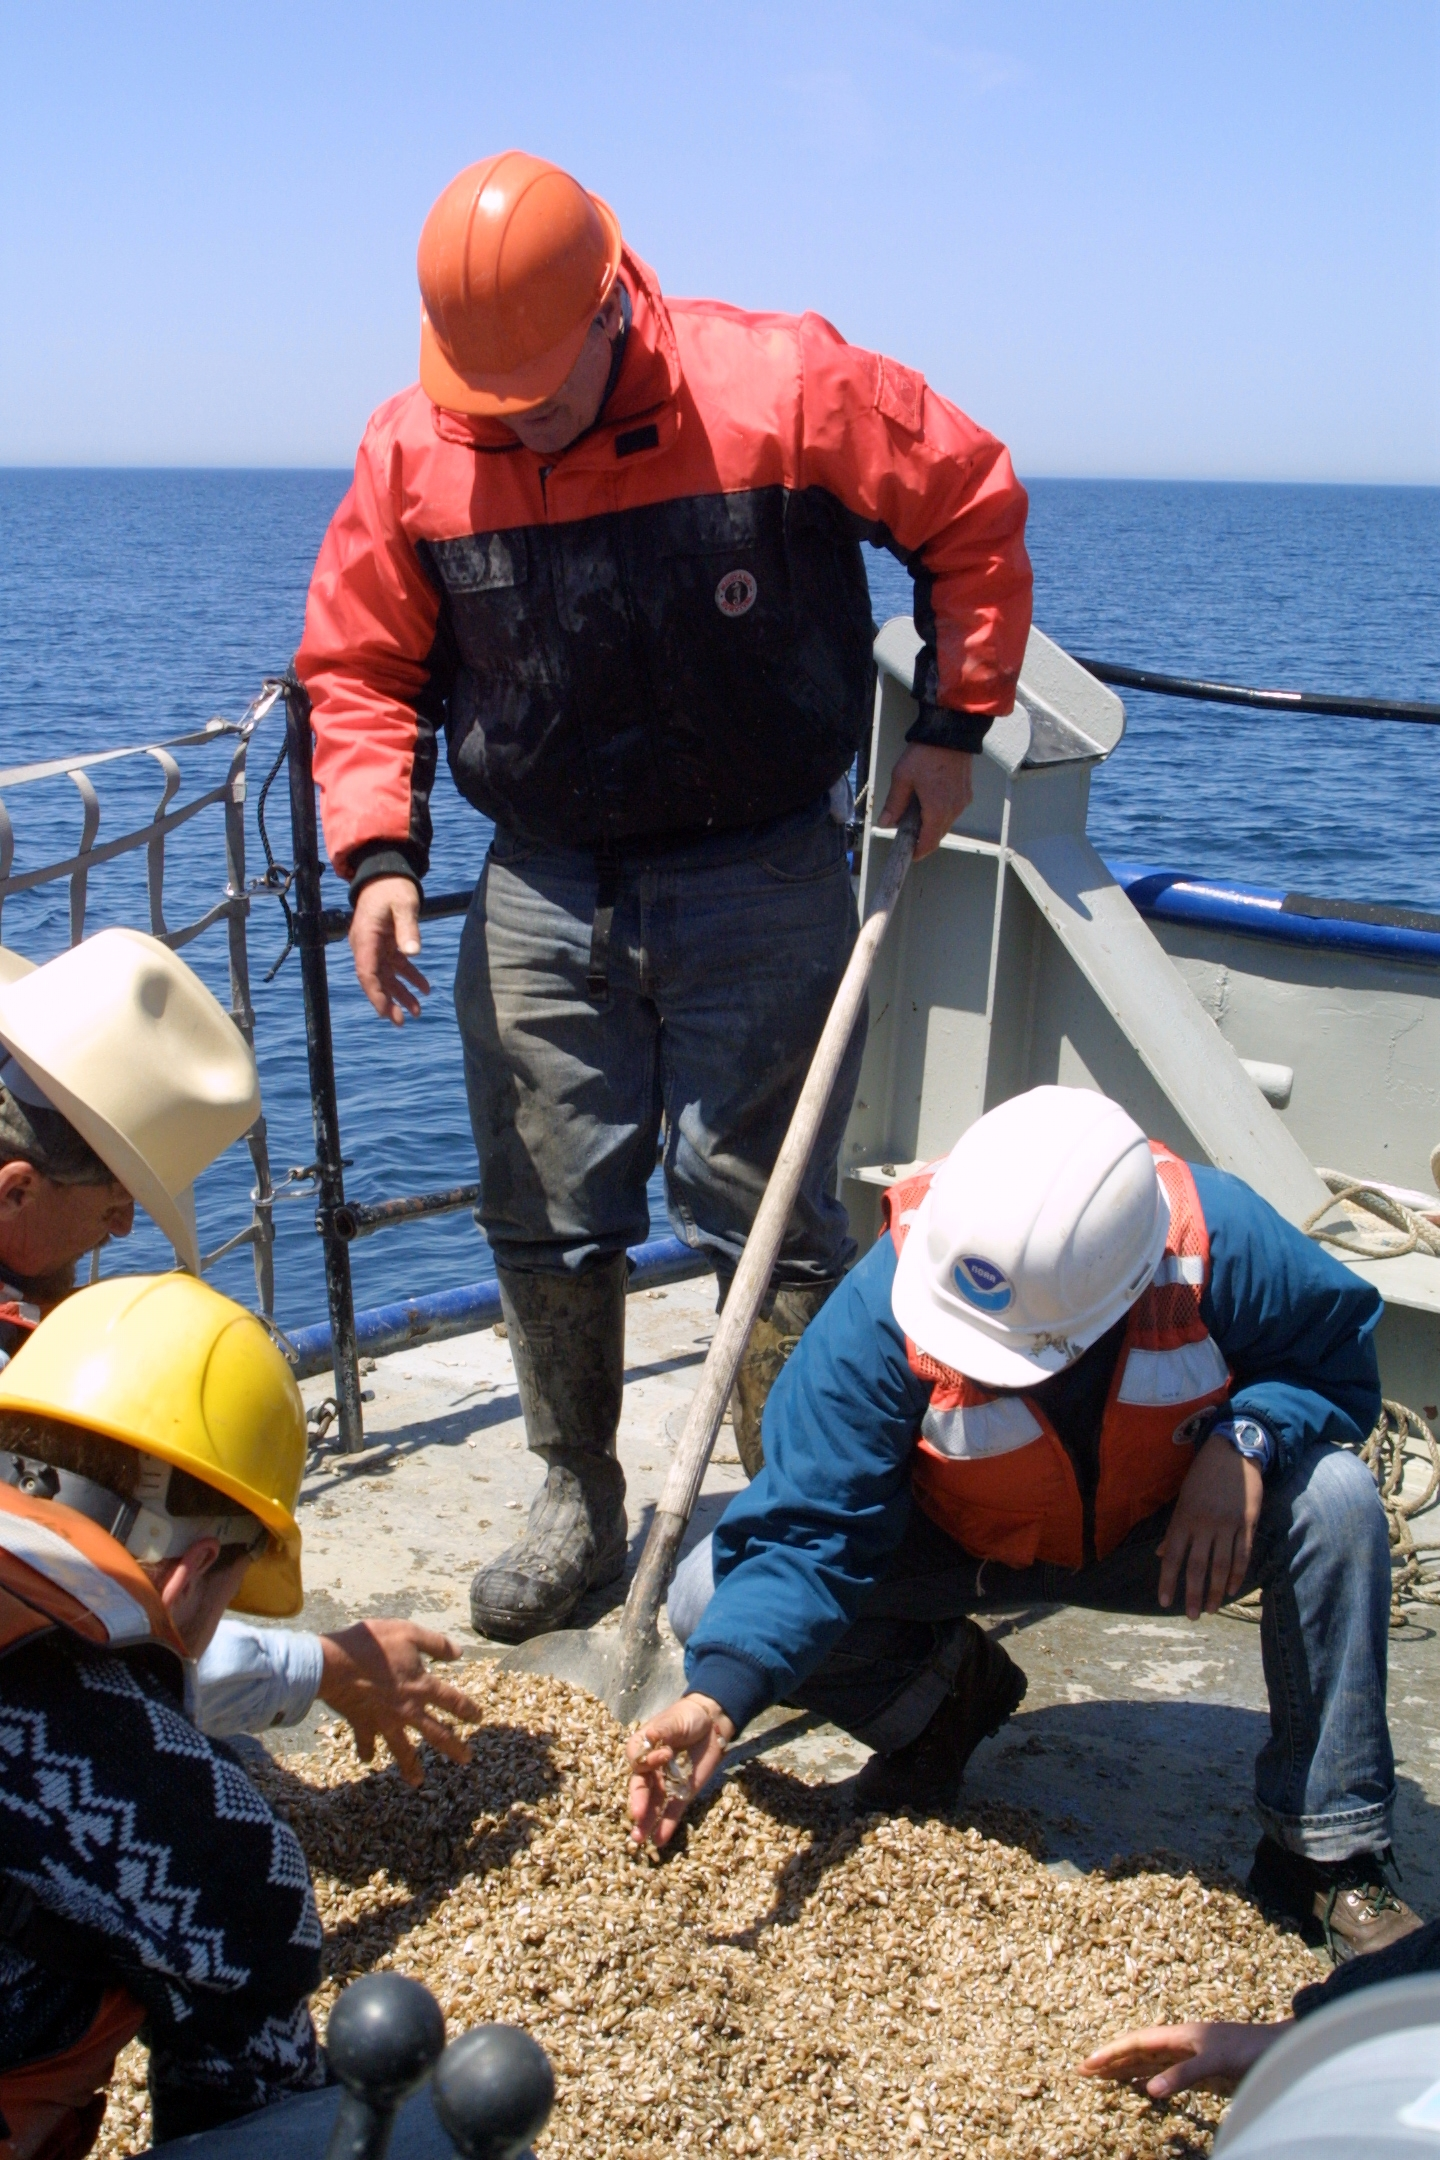 U-M researchers examine a load of quagga mussels pulled from the bottom of Lake Michigan during a 2009 voyage. Photo by Jim Erickson